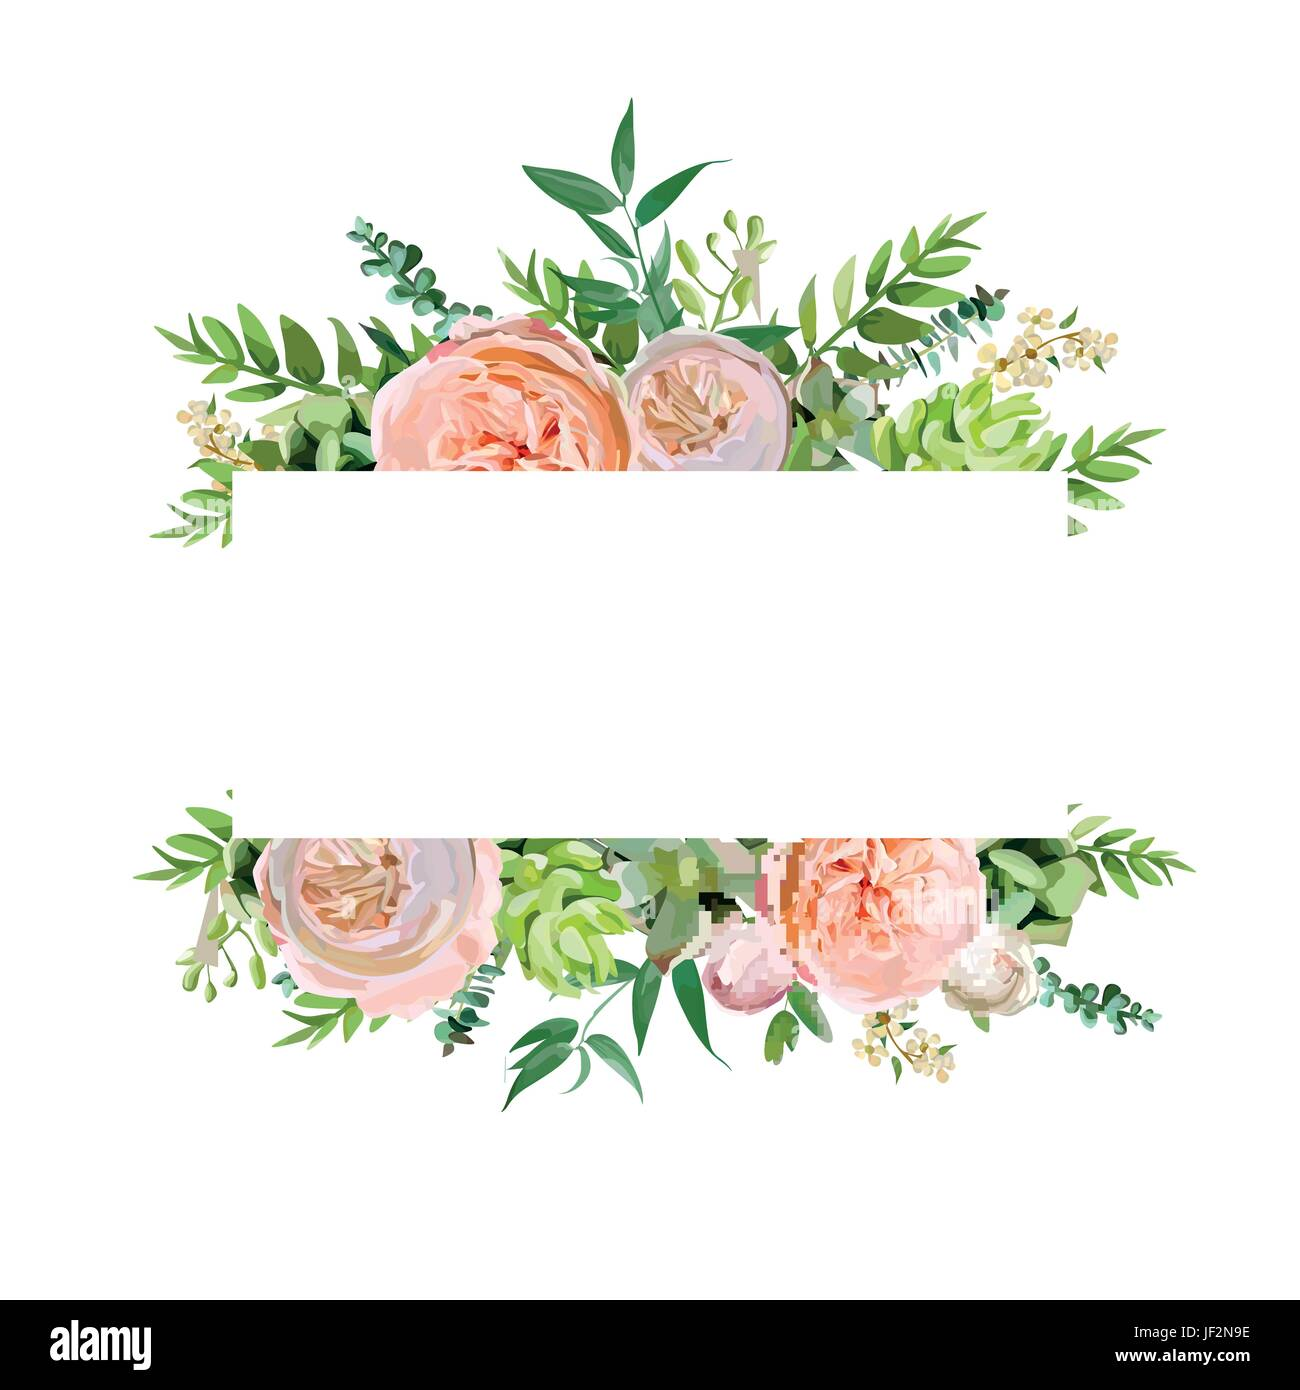 vector floral design horizontal card design soft pink peach english